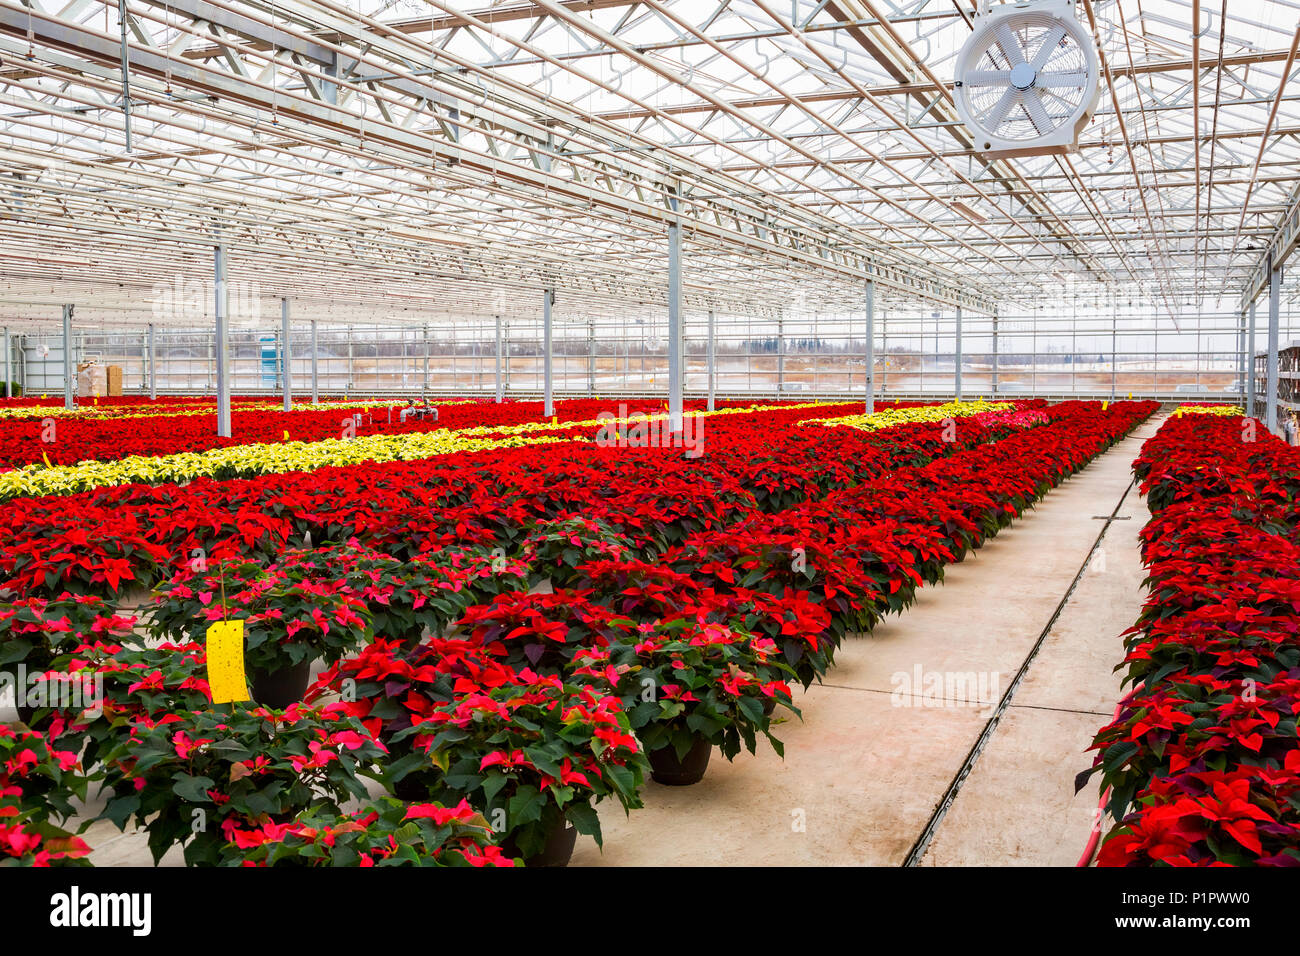 Rows of multi-coloured poinsettias that were grown in a greenhouse operation nearing the Christmas season; St. Albert, Alberta, Canada - Stock Image